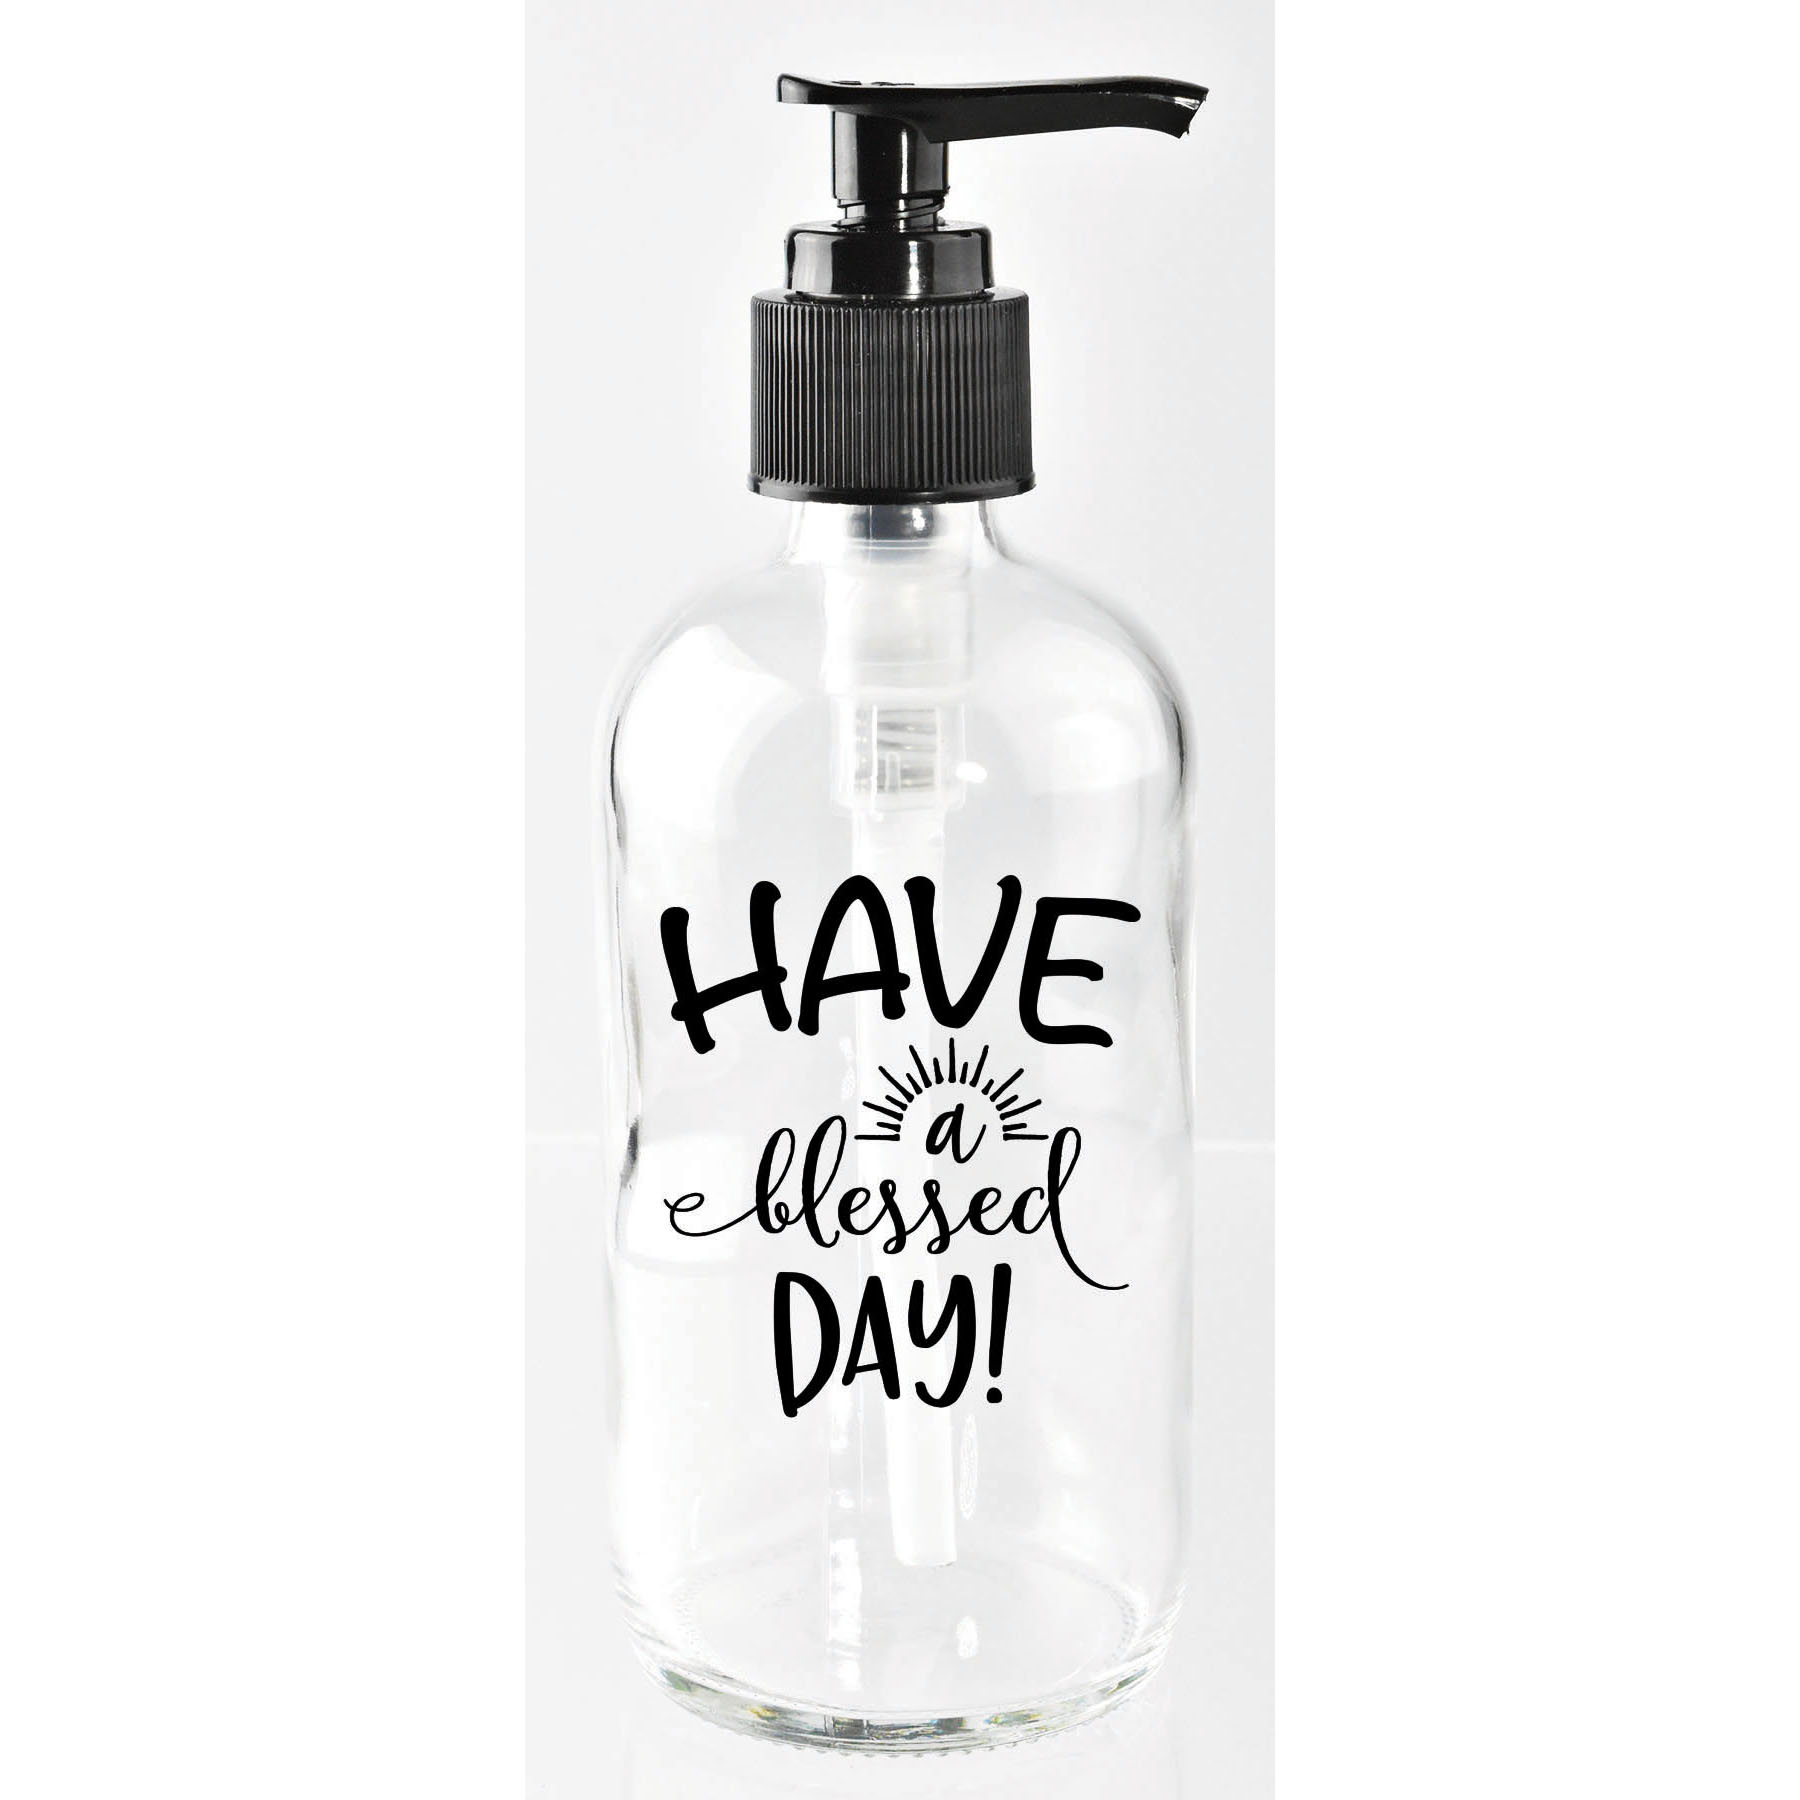 Have A Blessed Day Glass Soap Dispenser 8 ounces